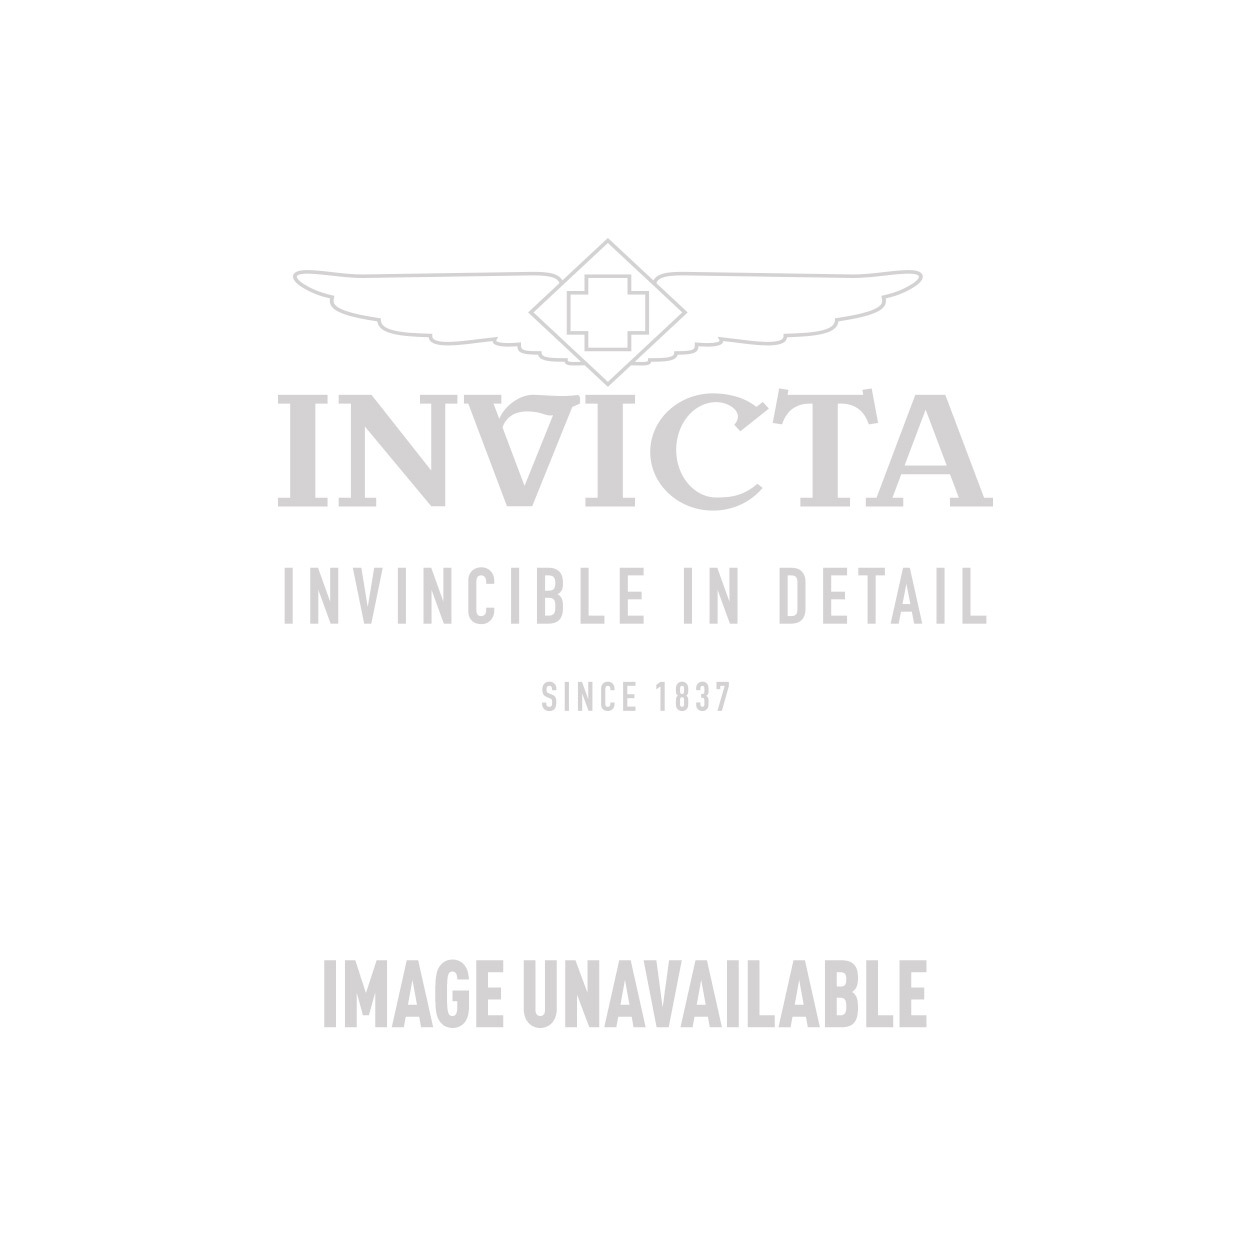 Invicta Specialty Mechanical Watch - Gold case with Light Brown tone Leather band - Model 17188